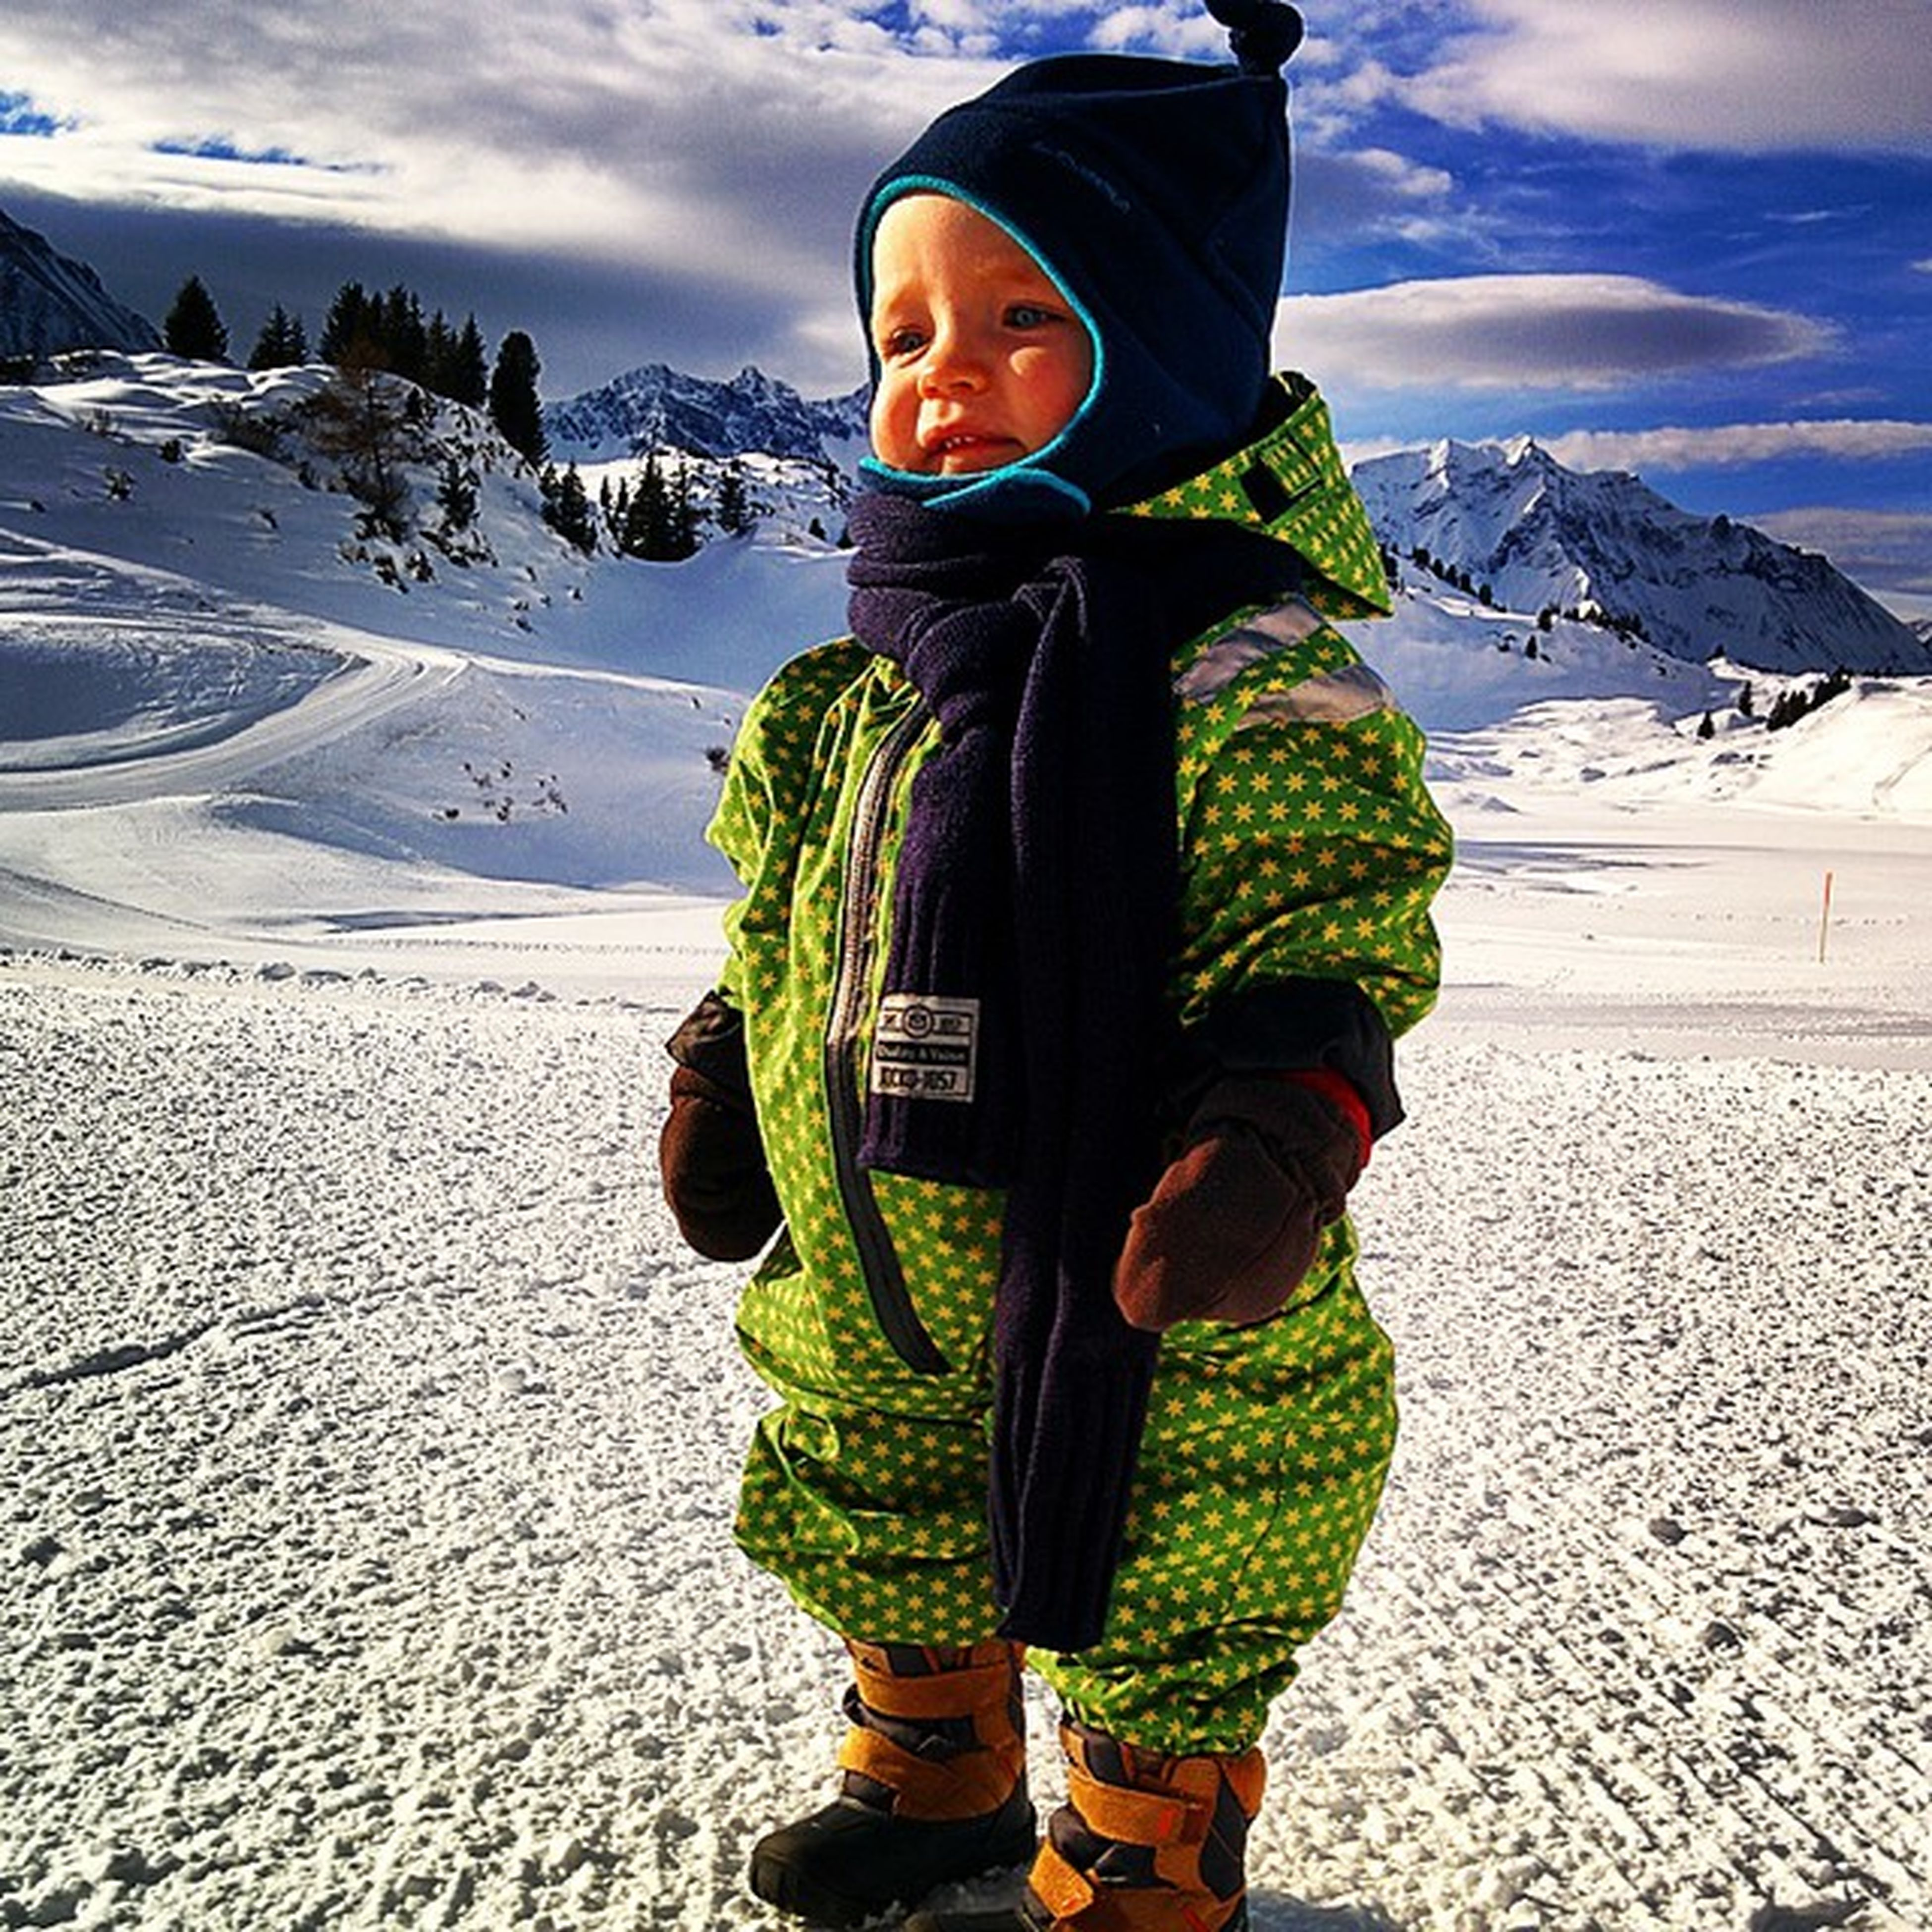 winter, snow, cold temperature, lifestyles, warm clothing, standing, leisure activity, sky, casual clothing, season, mountain, full length, front view, weather, looking at camera, portrait, hooded shirt, person